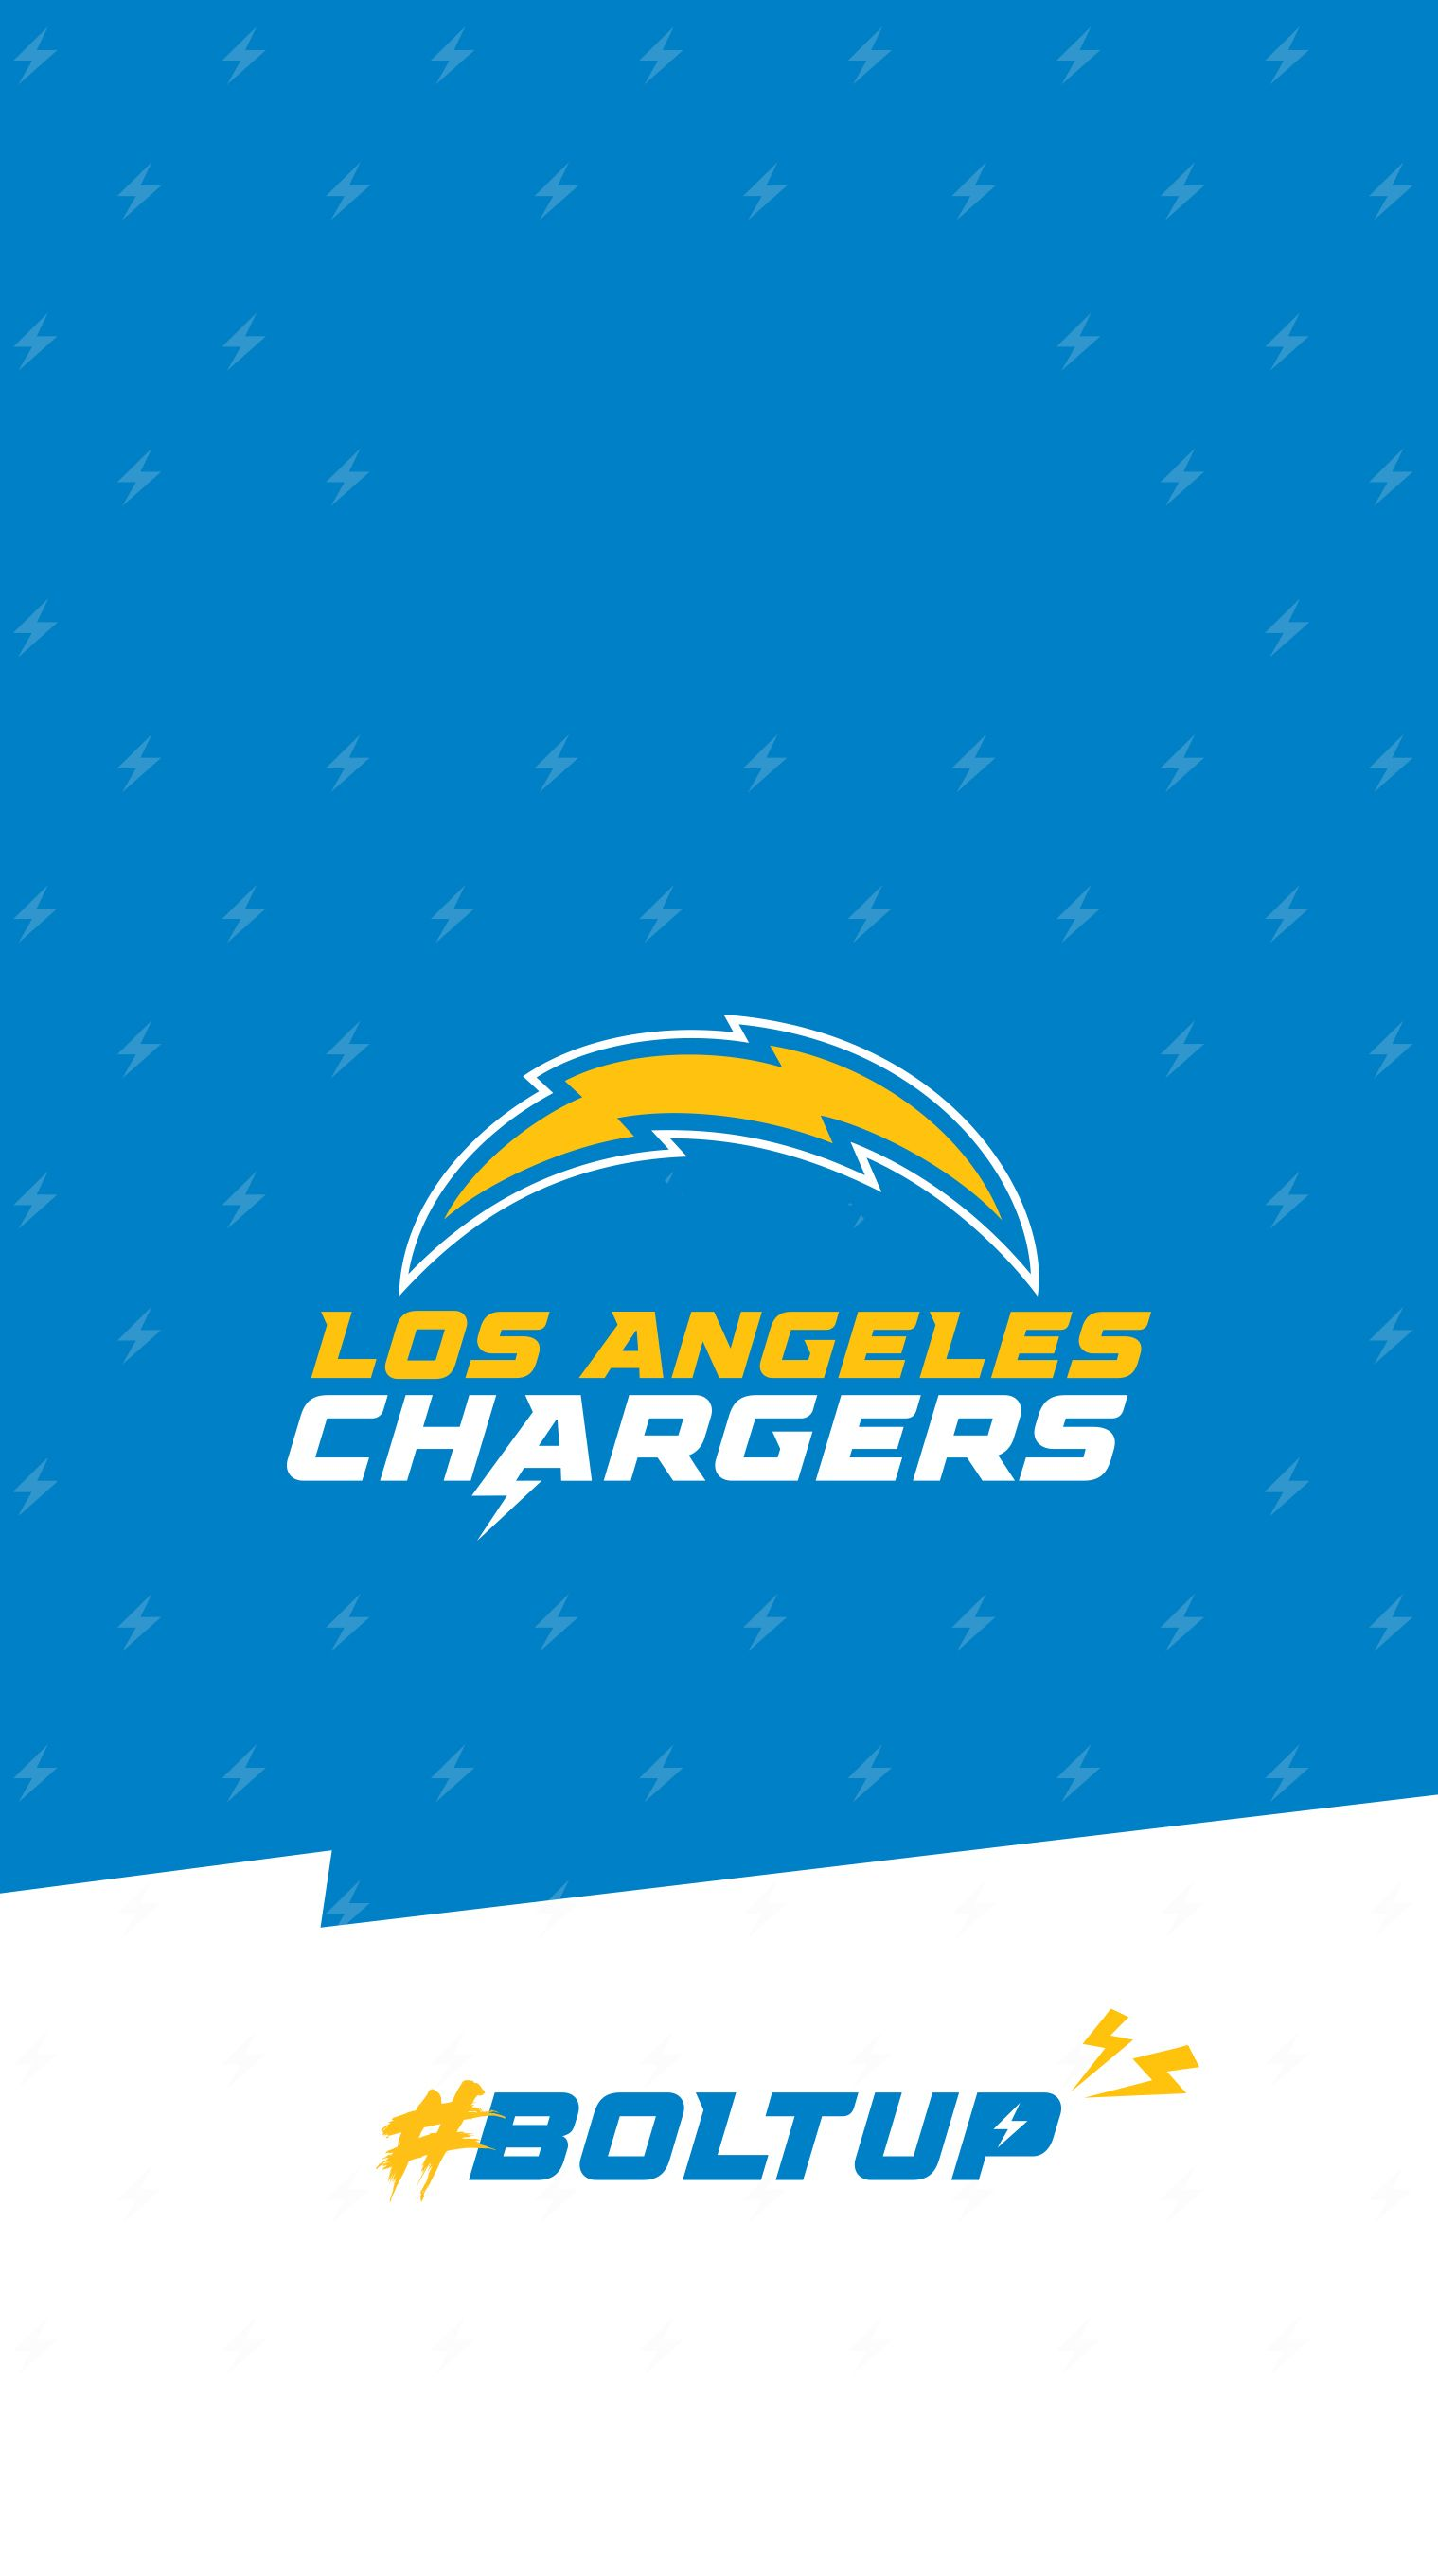 Chargers Iphone Wallpapers Top Free Chargers Iphone Backgrounds Wallpaperaccess